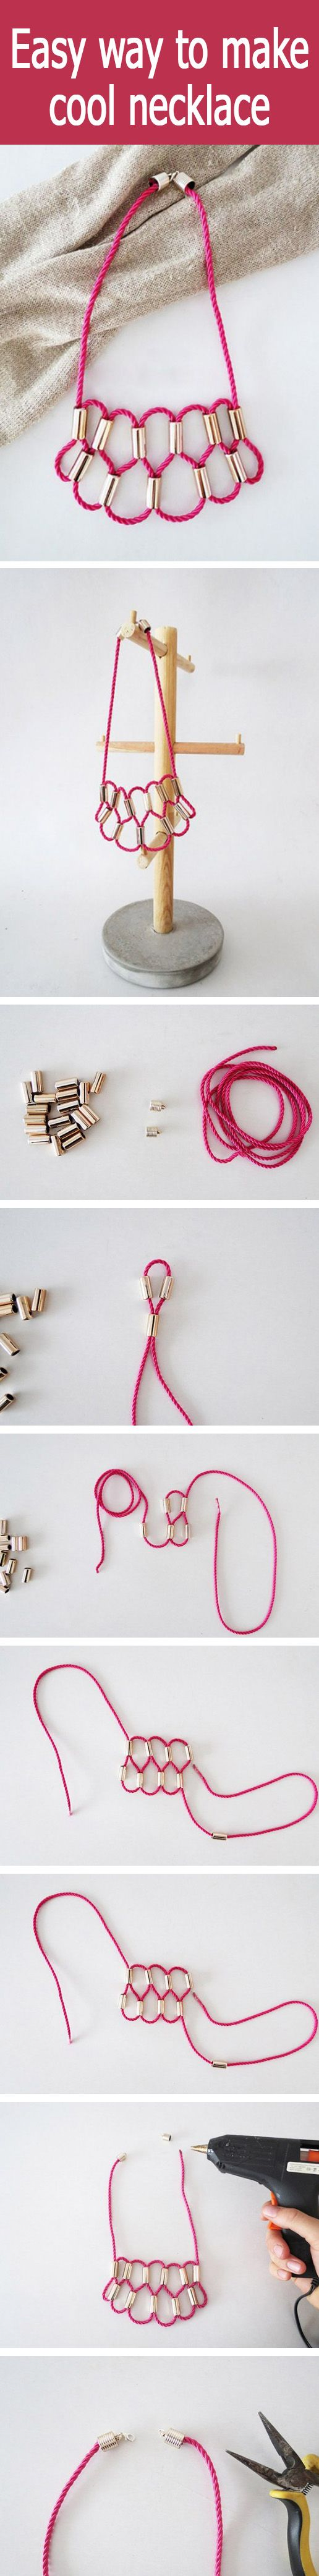 Easy way to make cool necklace